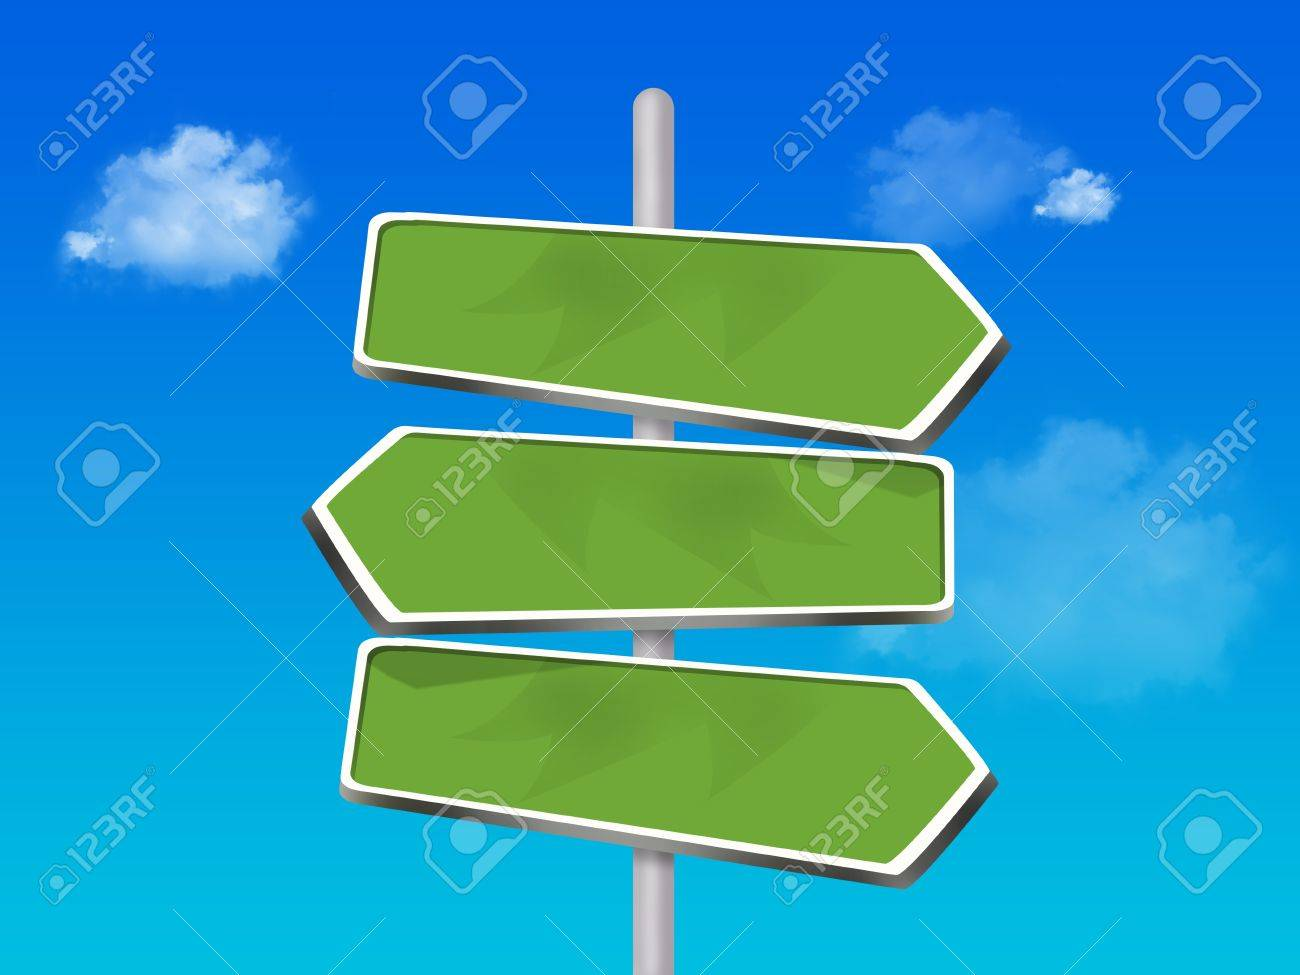 3 way direction signs Stock Photo - 16970748